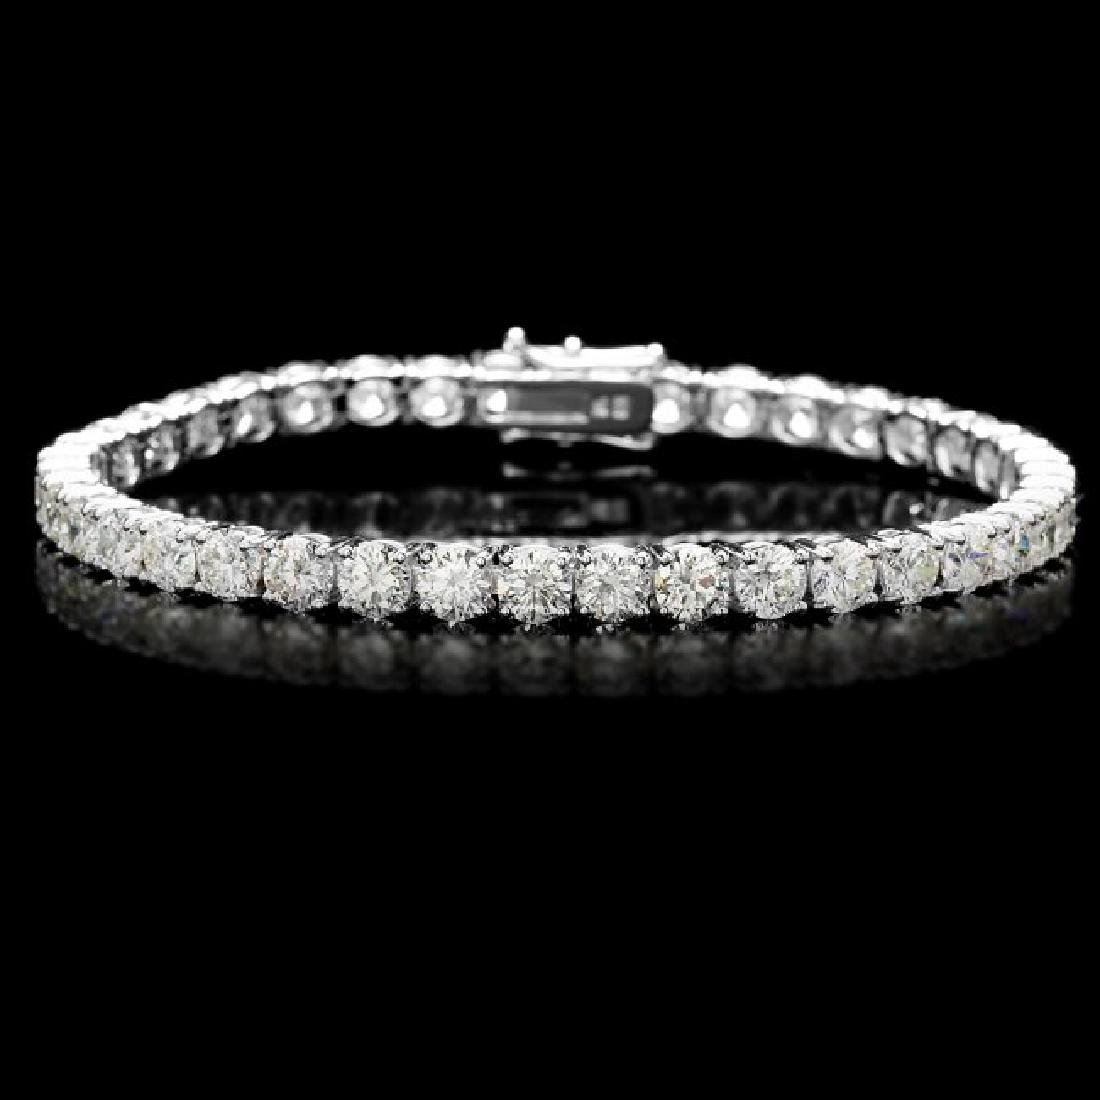 18k White Gold 13.00ct Diamond Tennis Bracelet